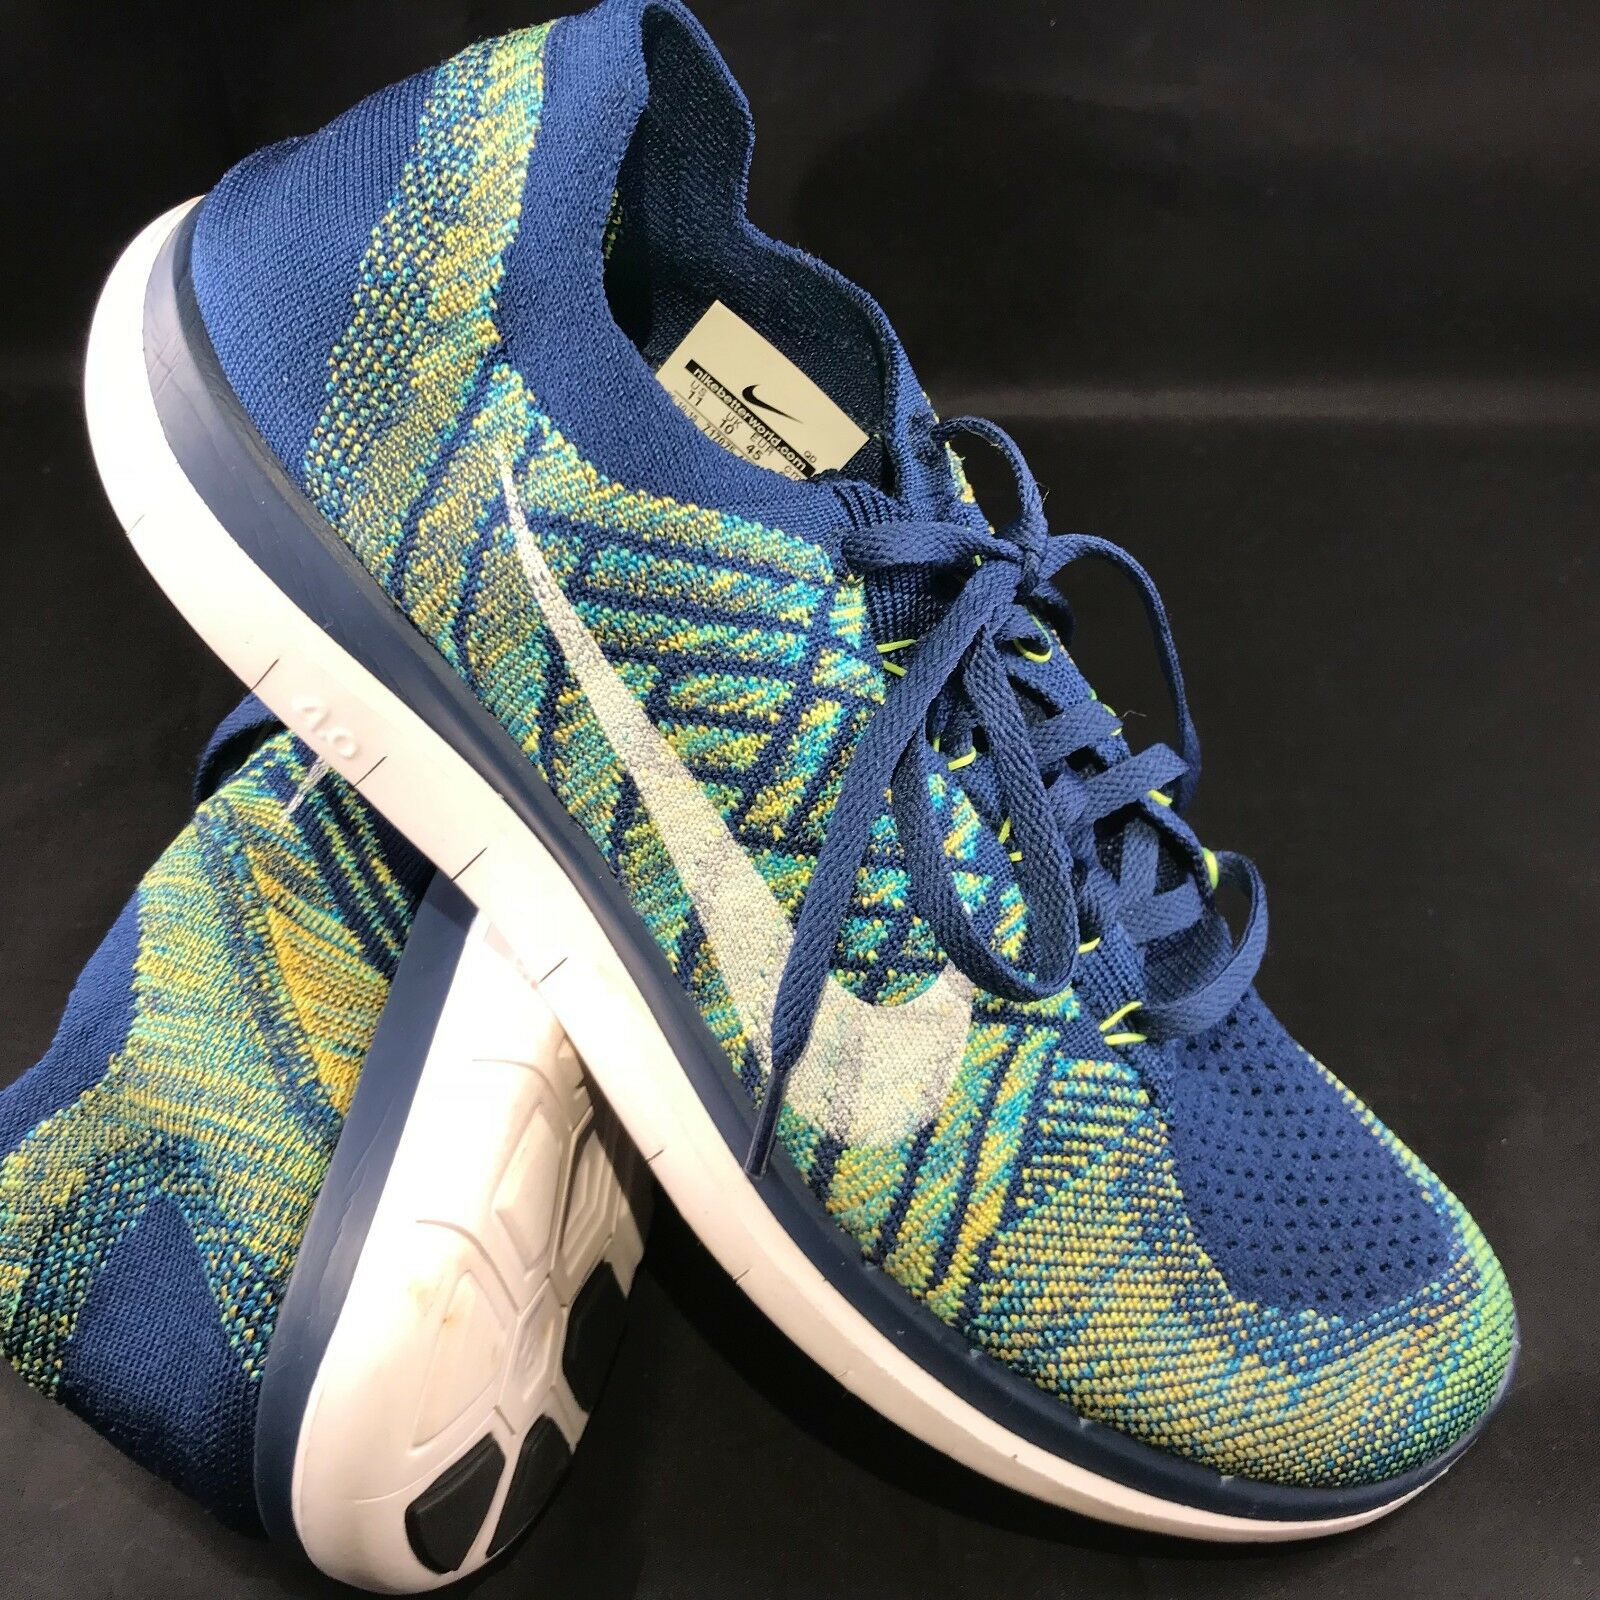 Nike 4.0 Flyknit Men's Running shoes Brave bluee Volt Navy Sz 11 45 EUR 717075-402